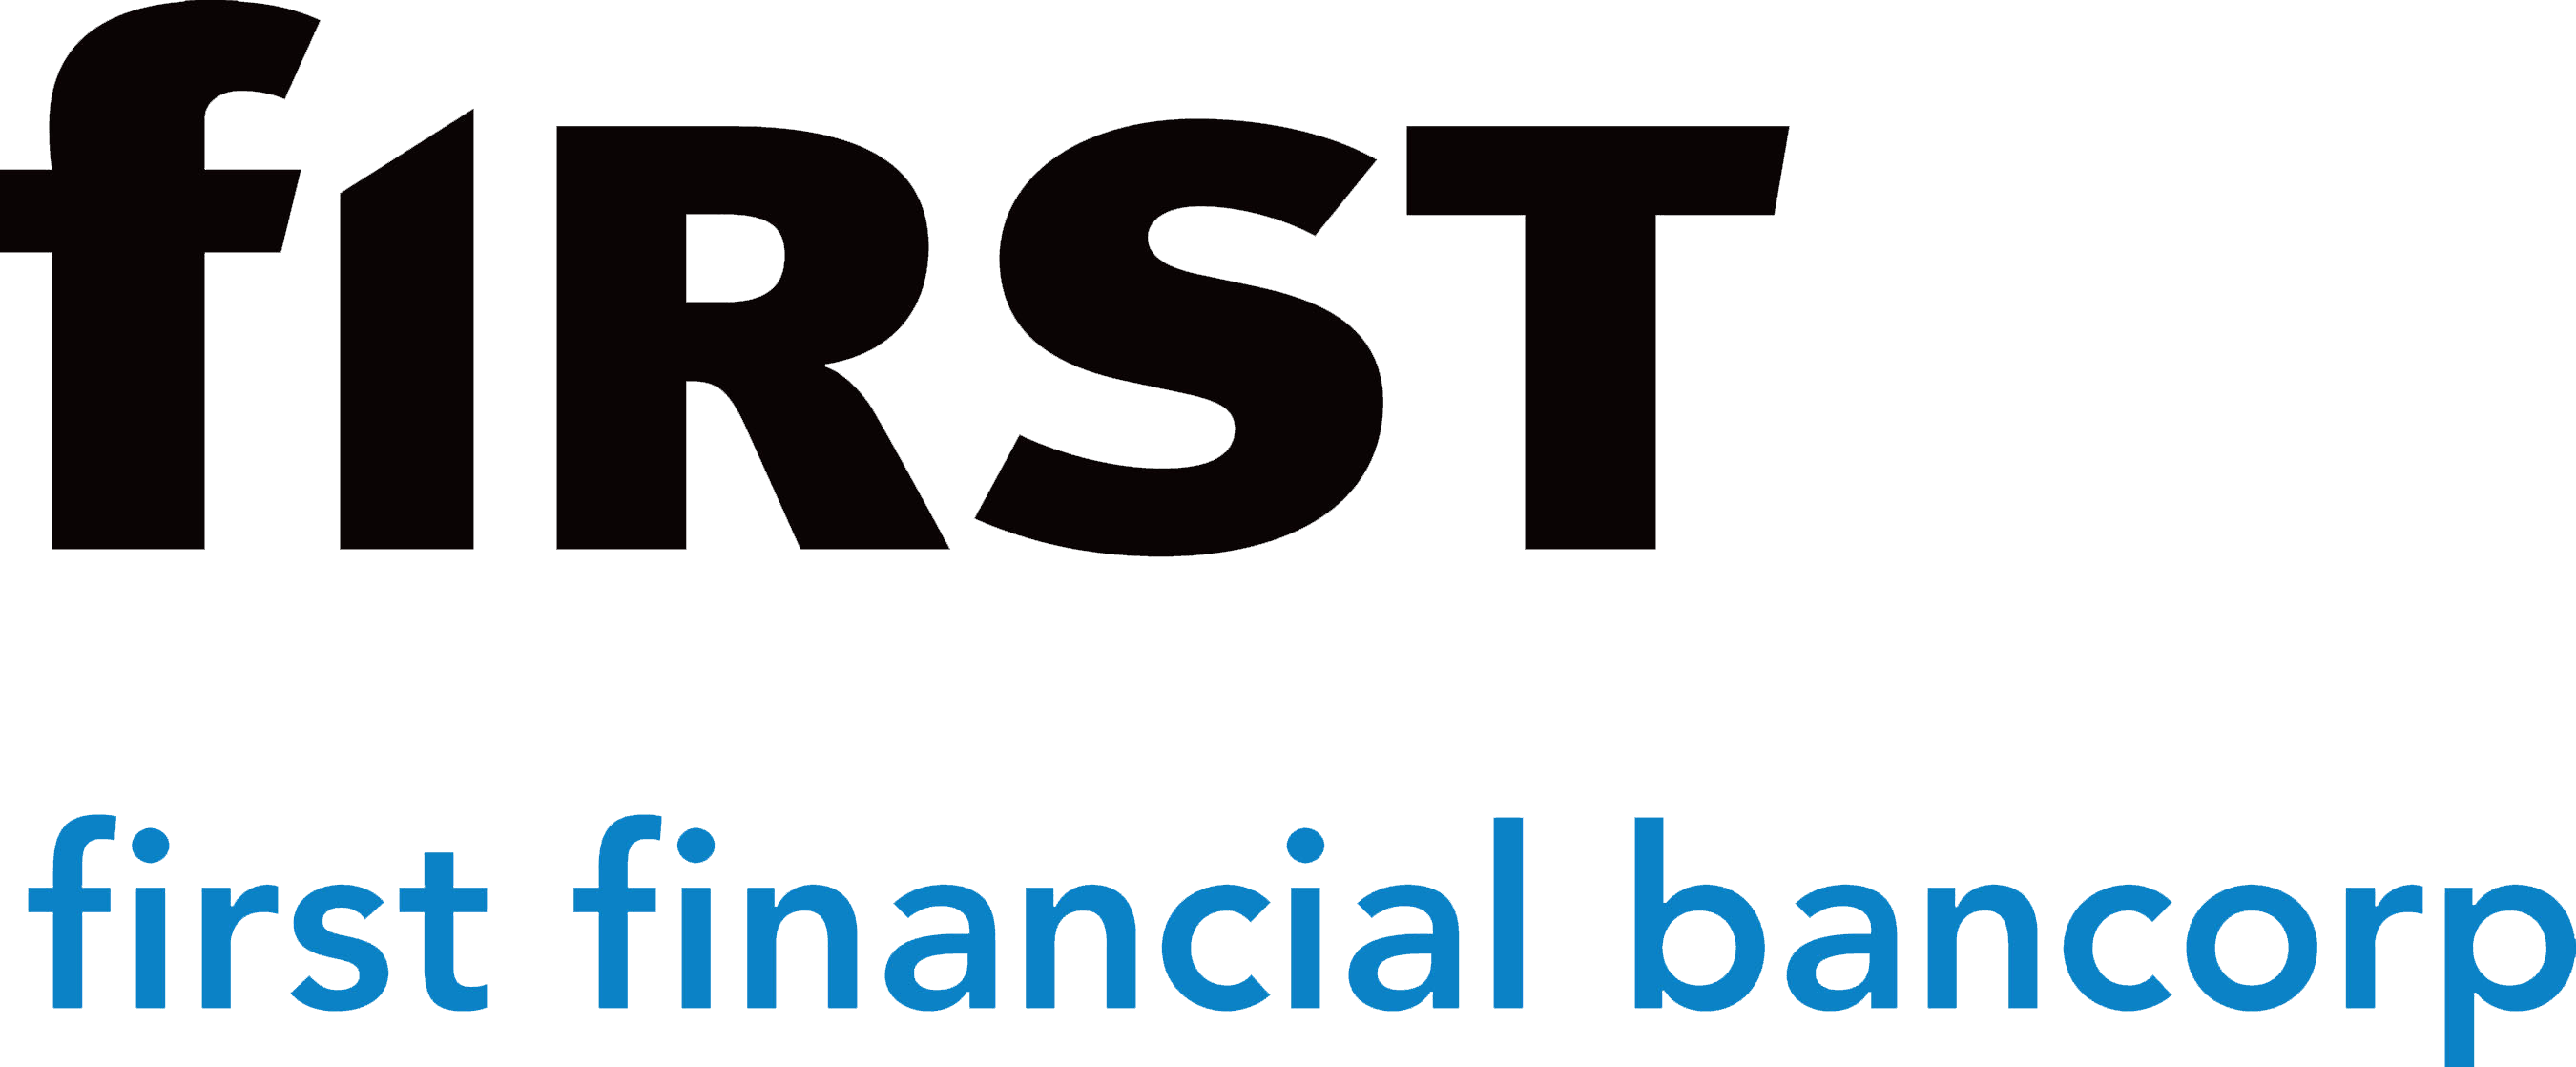 first financial LOGO.png